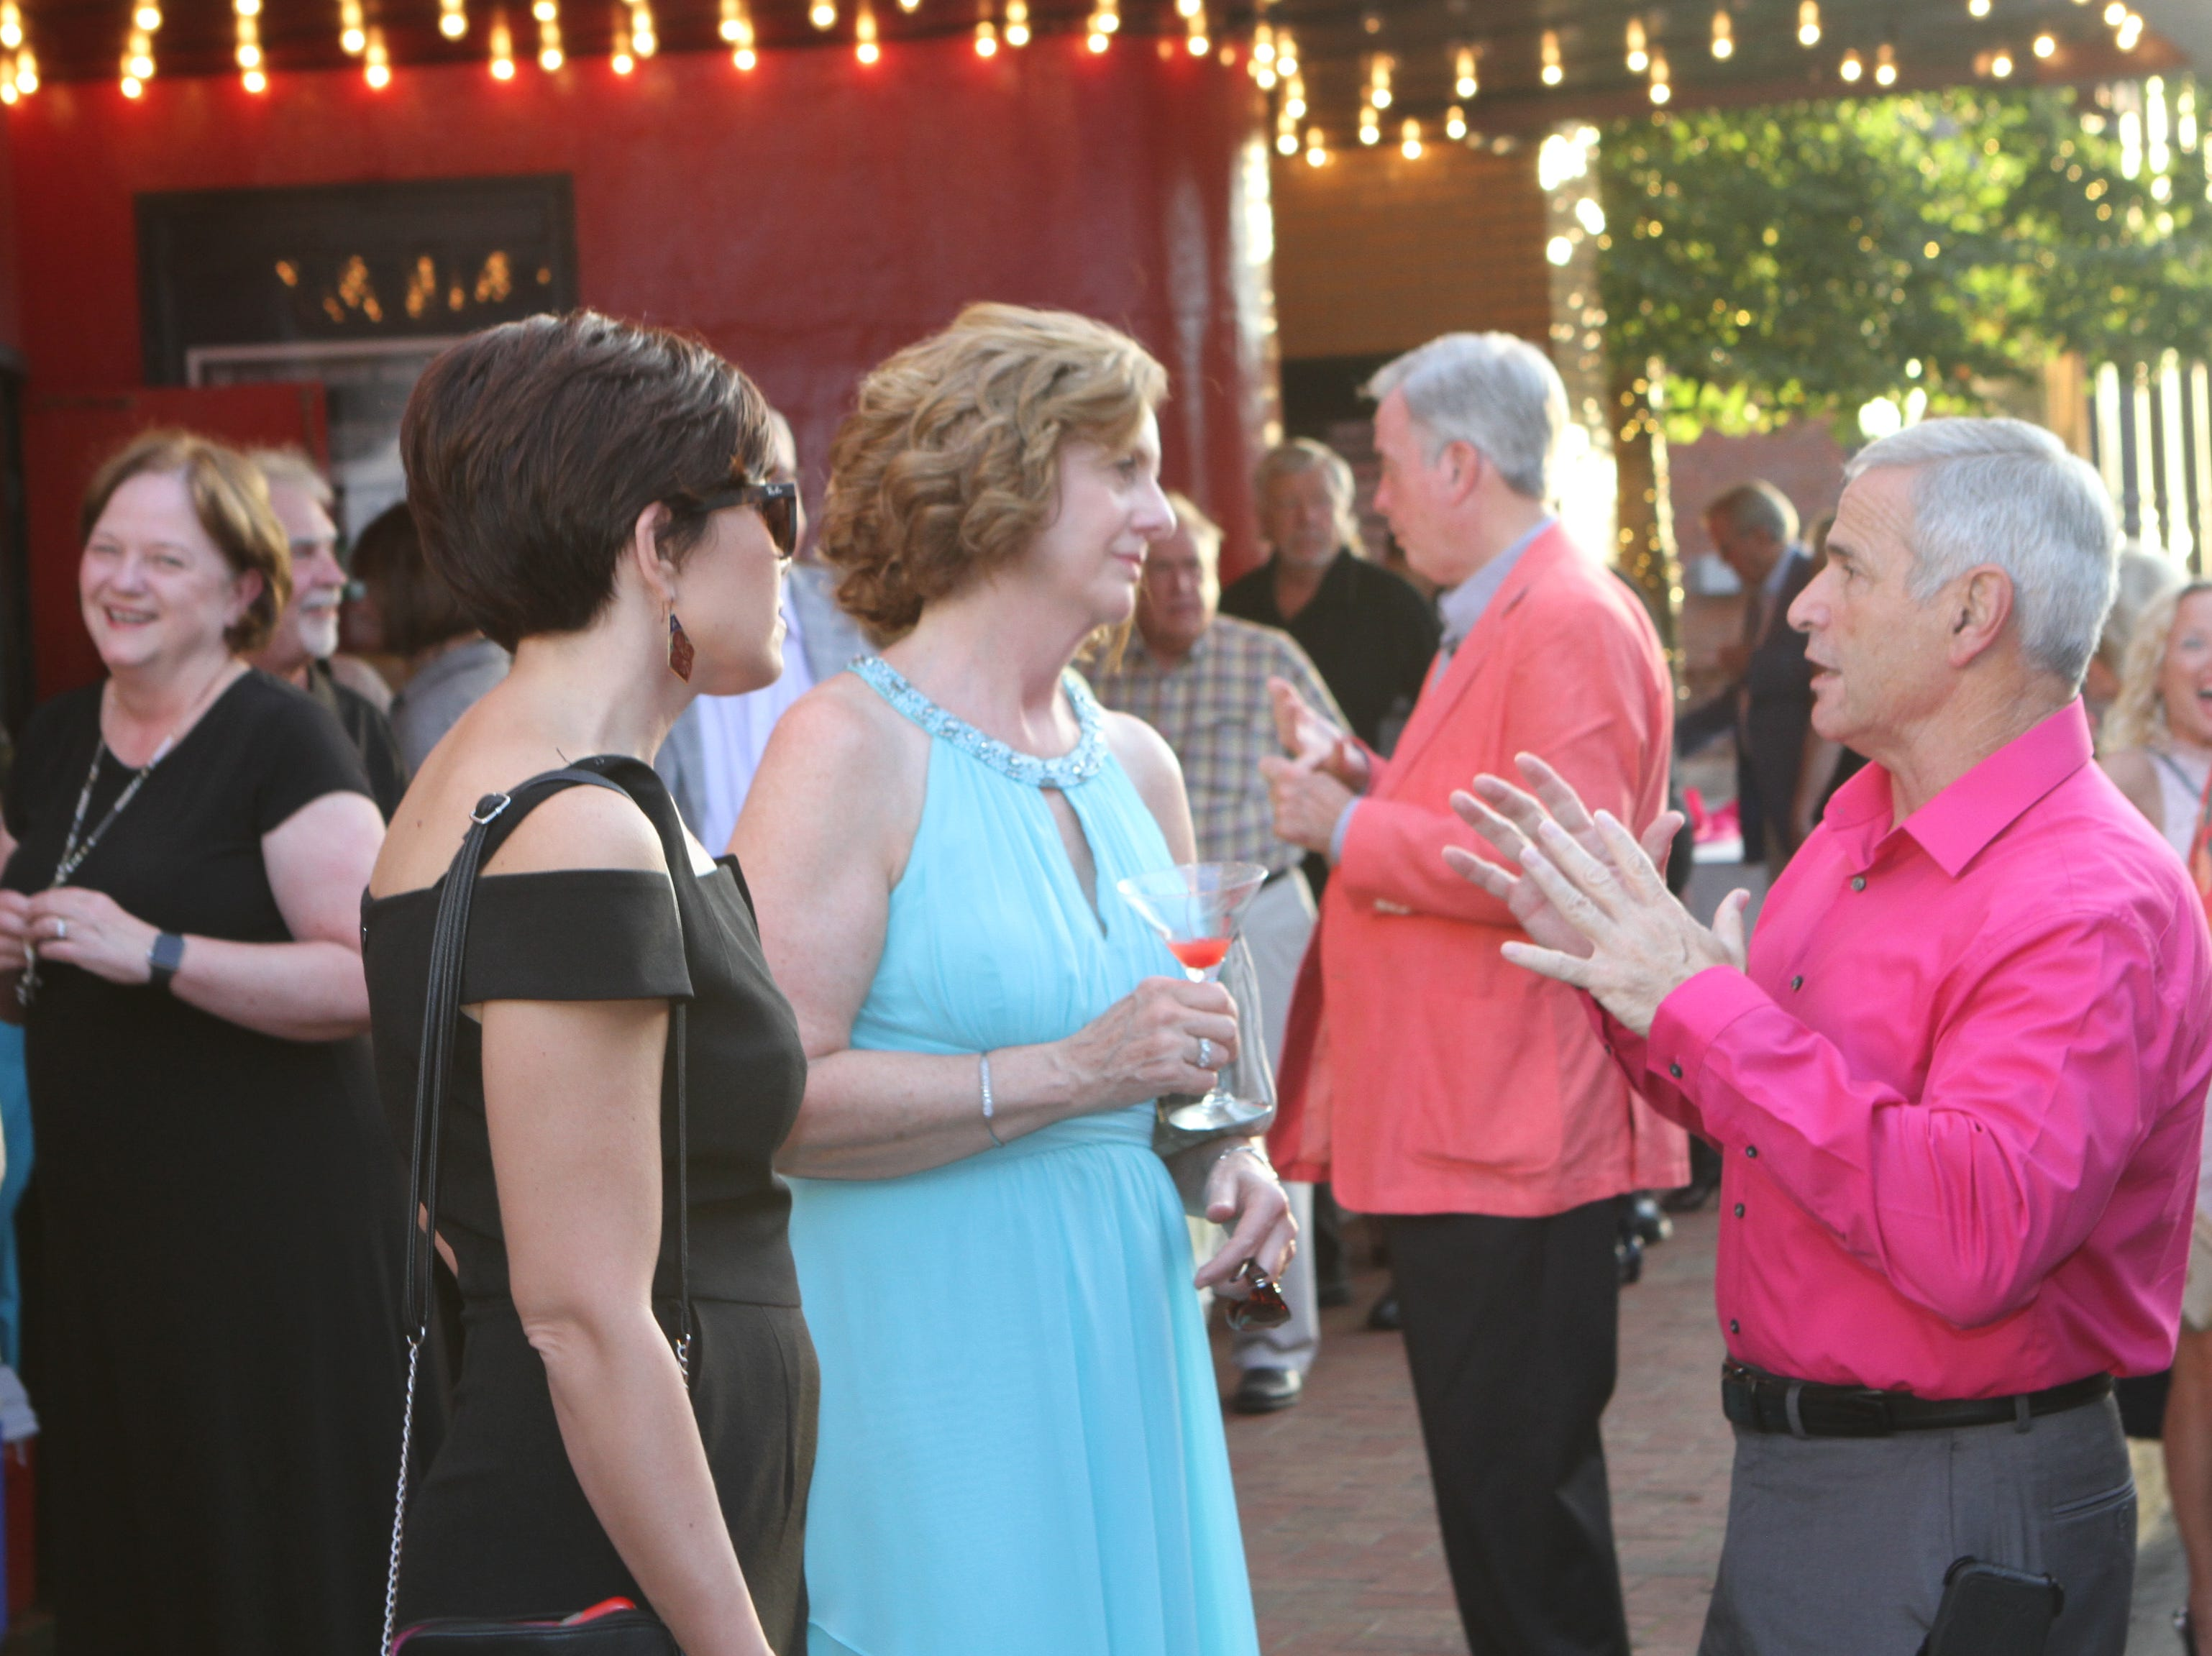 The 36th Annual Roxy Gala drew a packed house for dinner, live and silent auctions, and a preview of Hairspray on Saturday, Sept. 15, 2018